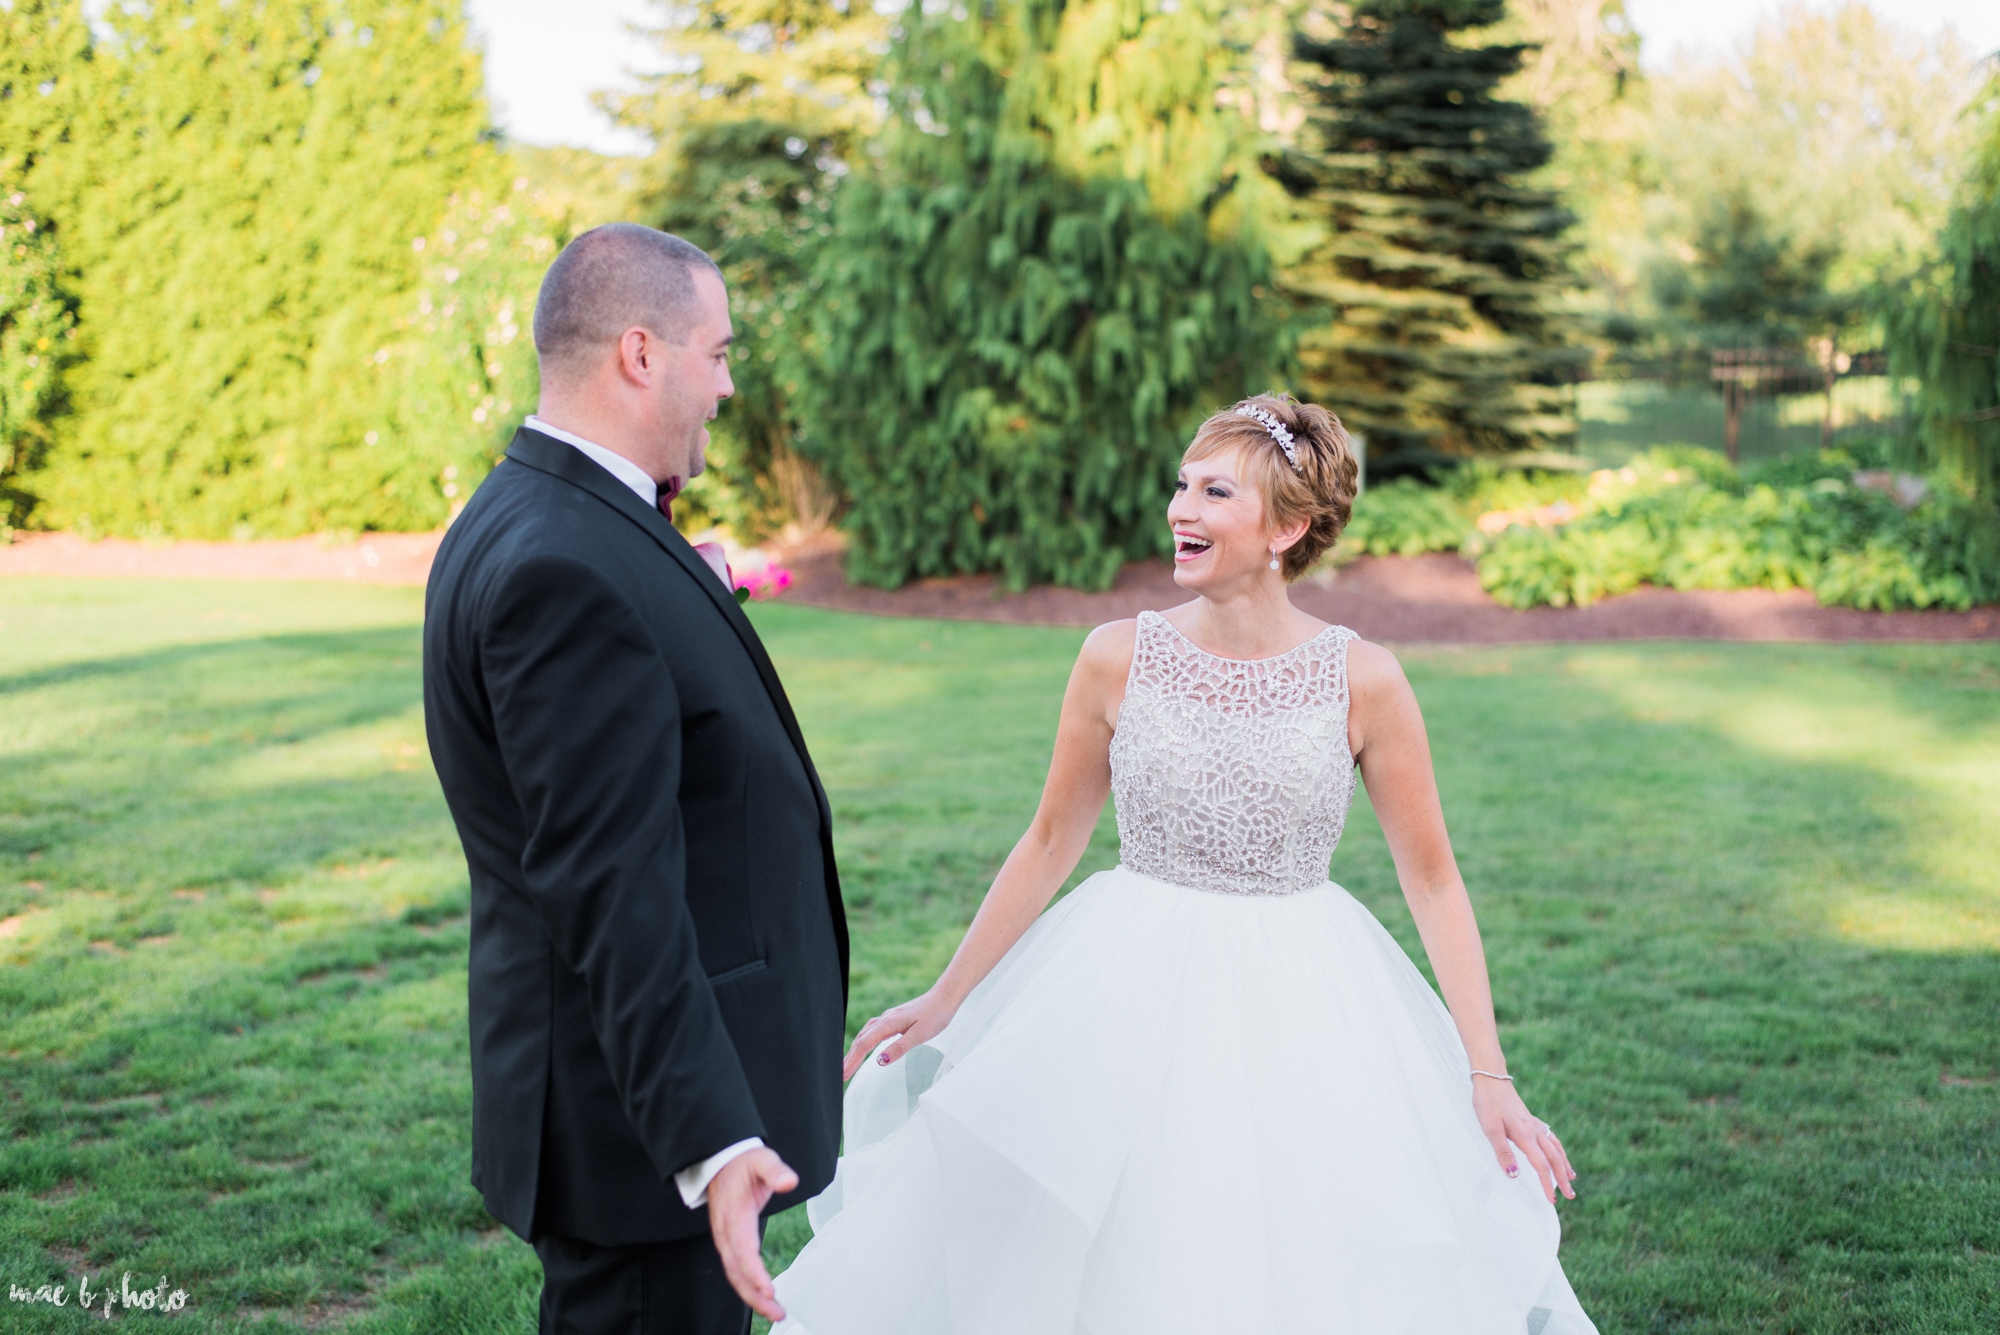 Mary Catherine & Chad's Elegant and Intimate Country Club Wedding at Squaw Creek in Youngstown Ohio by Mae B Photo-63.jpg